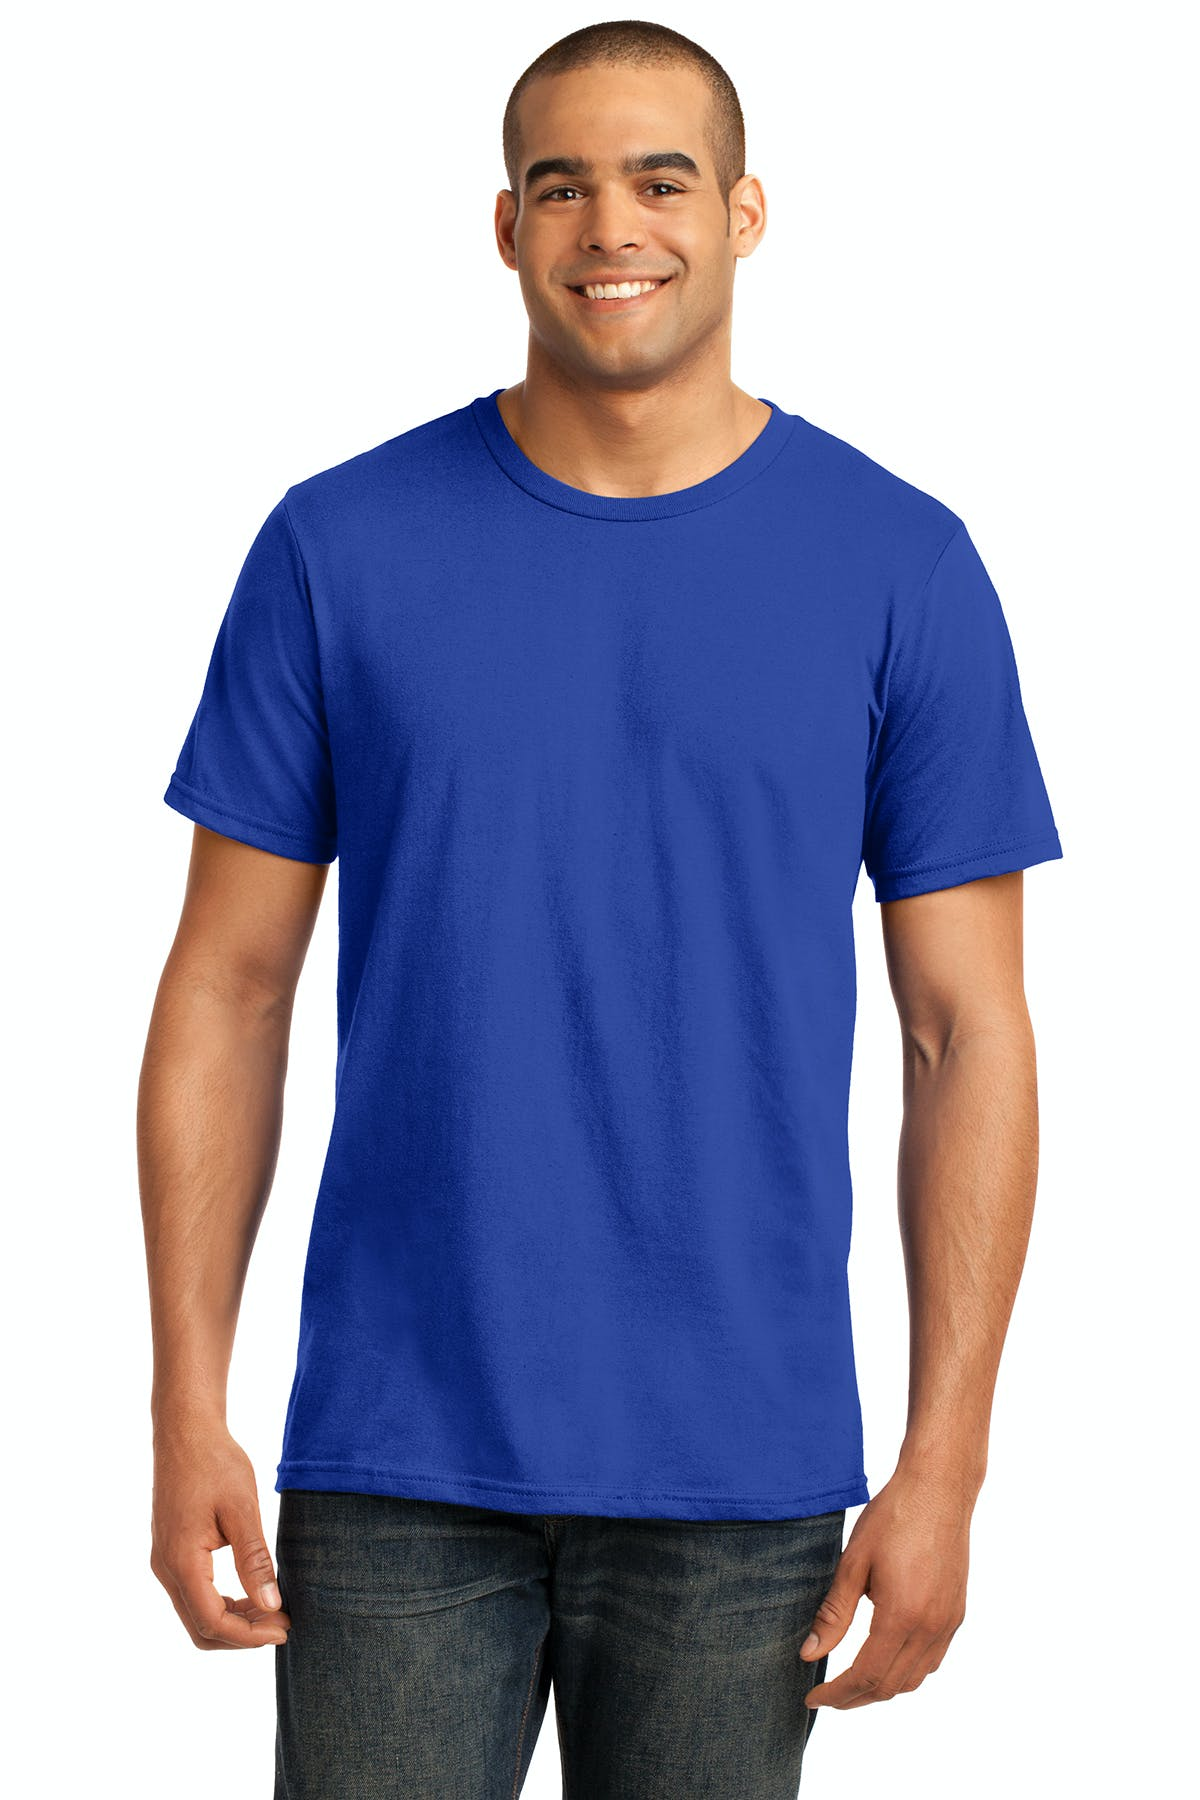 Anvil® 100% Combed Ring Spun Cotton T-Shirt - sold by PRINT CITY GRAPHICS, INC